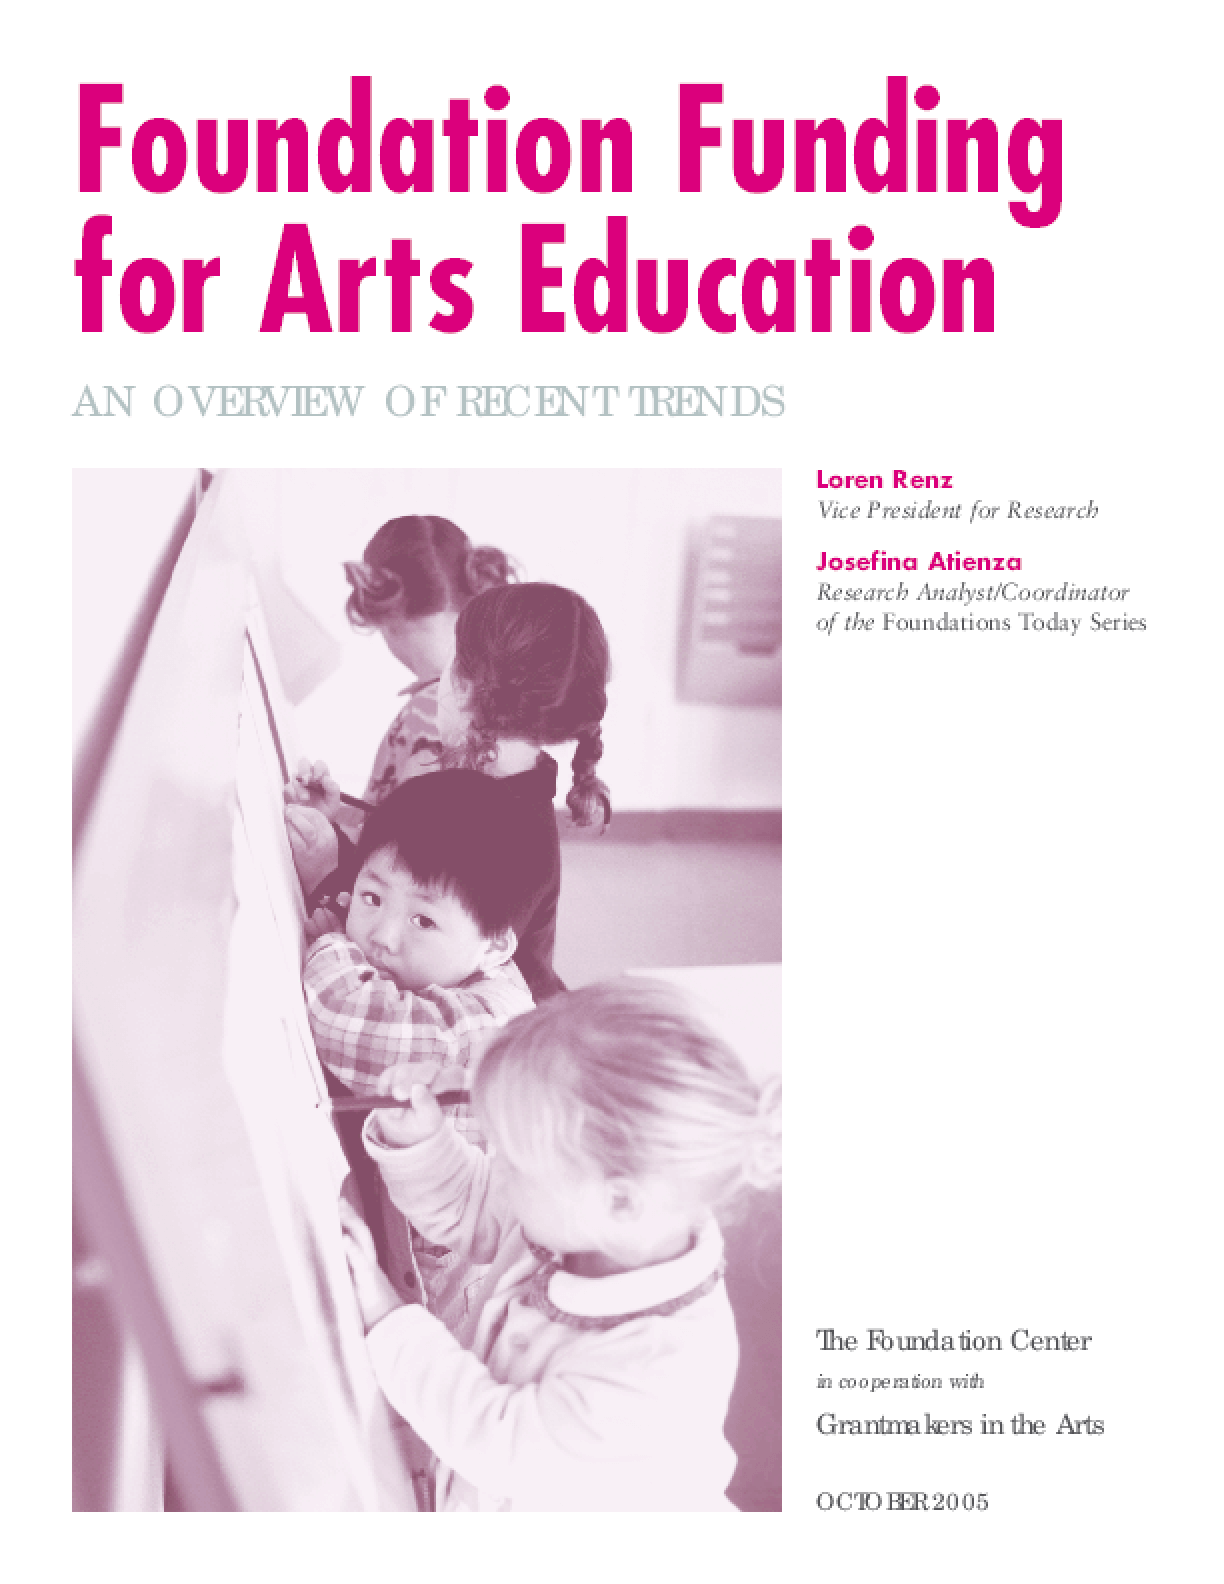 Foundation Funding for Arts Education